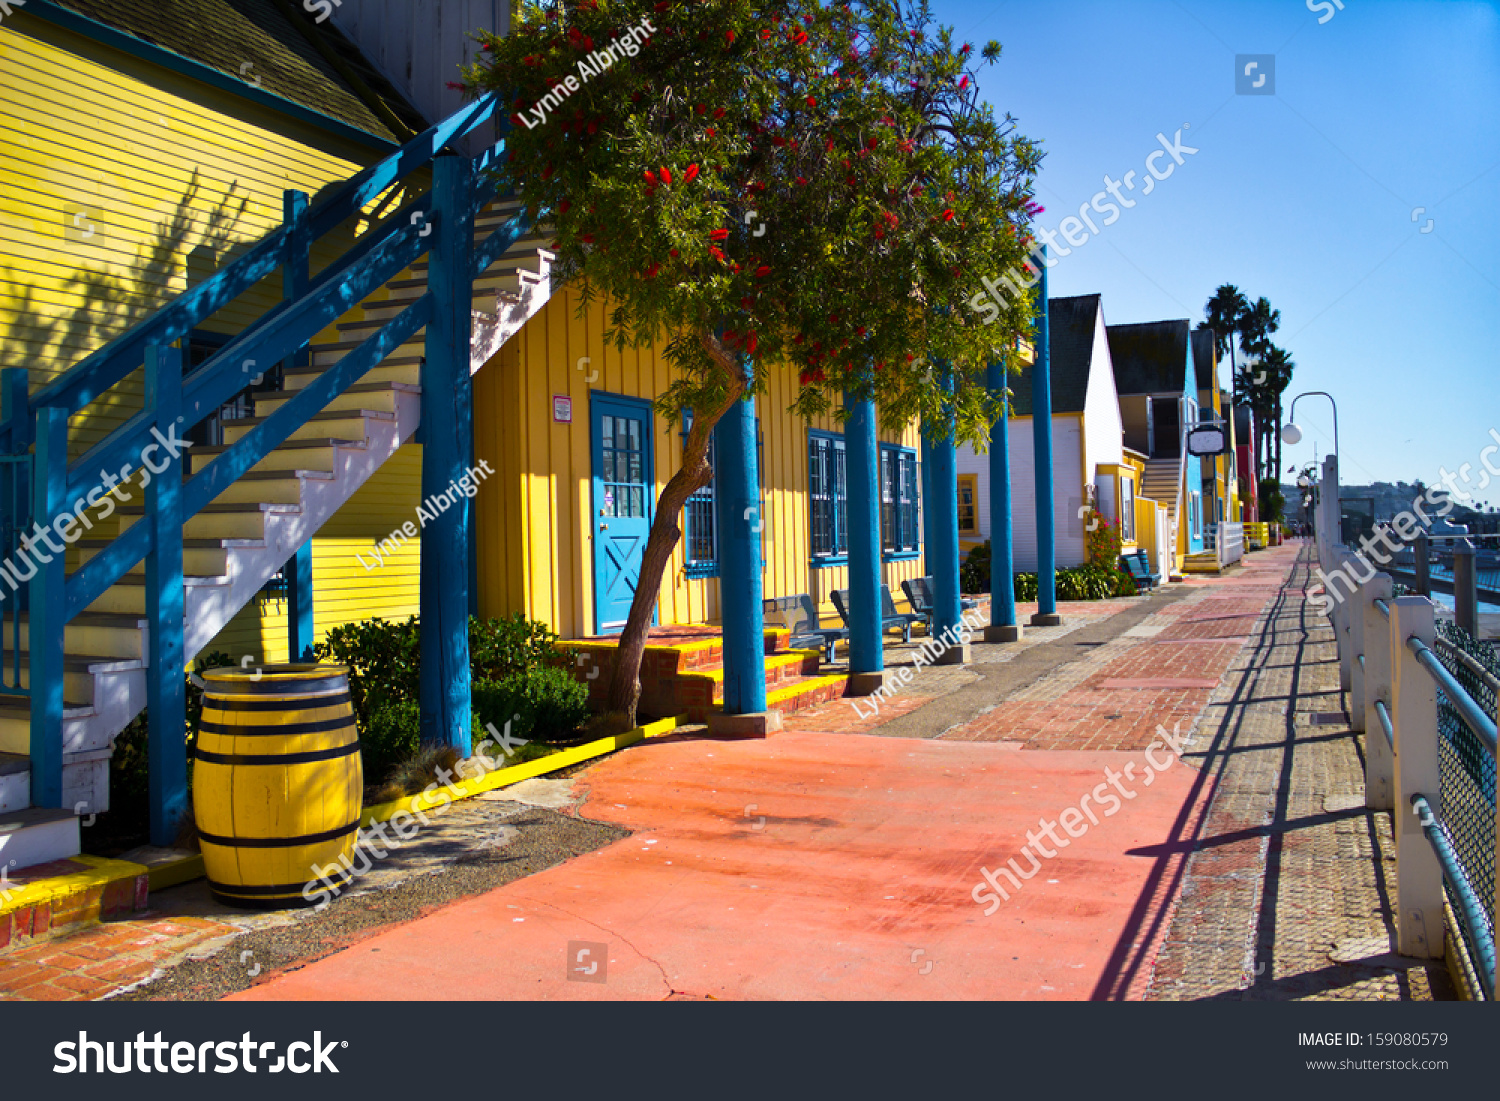 Fisherman'S Village Has Colorful Storefronts And A Wide ...